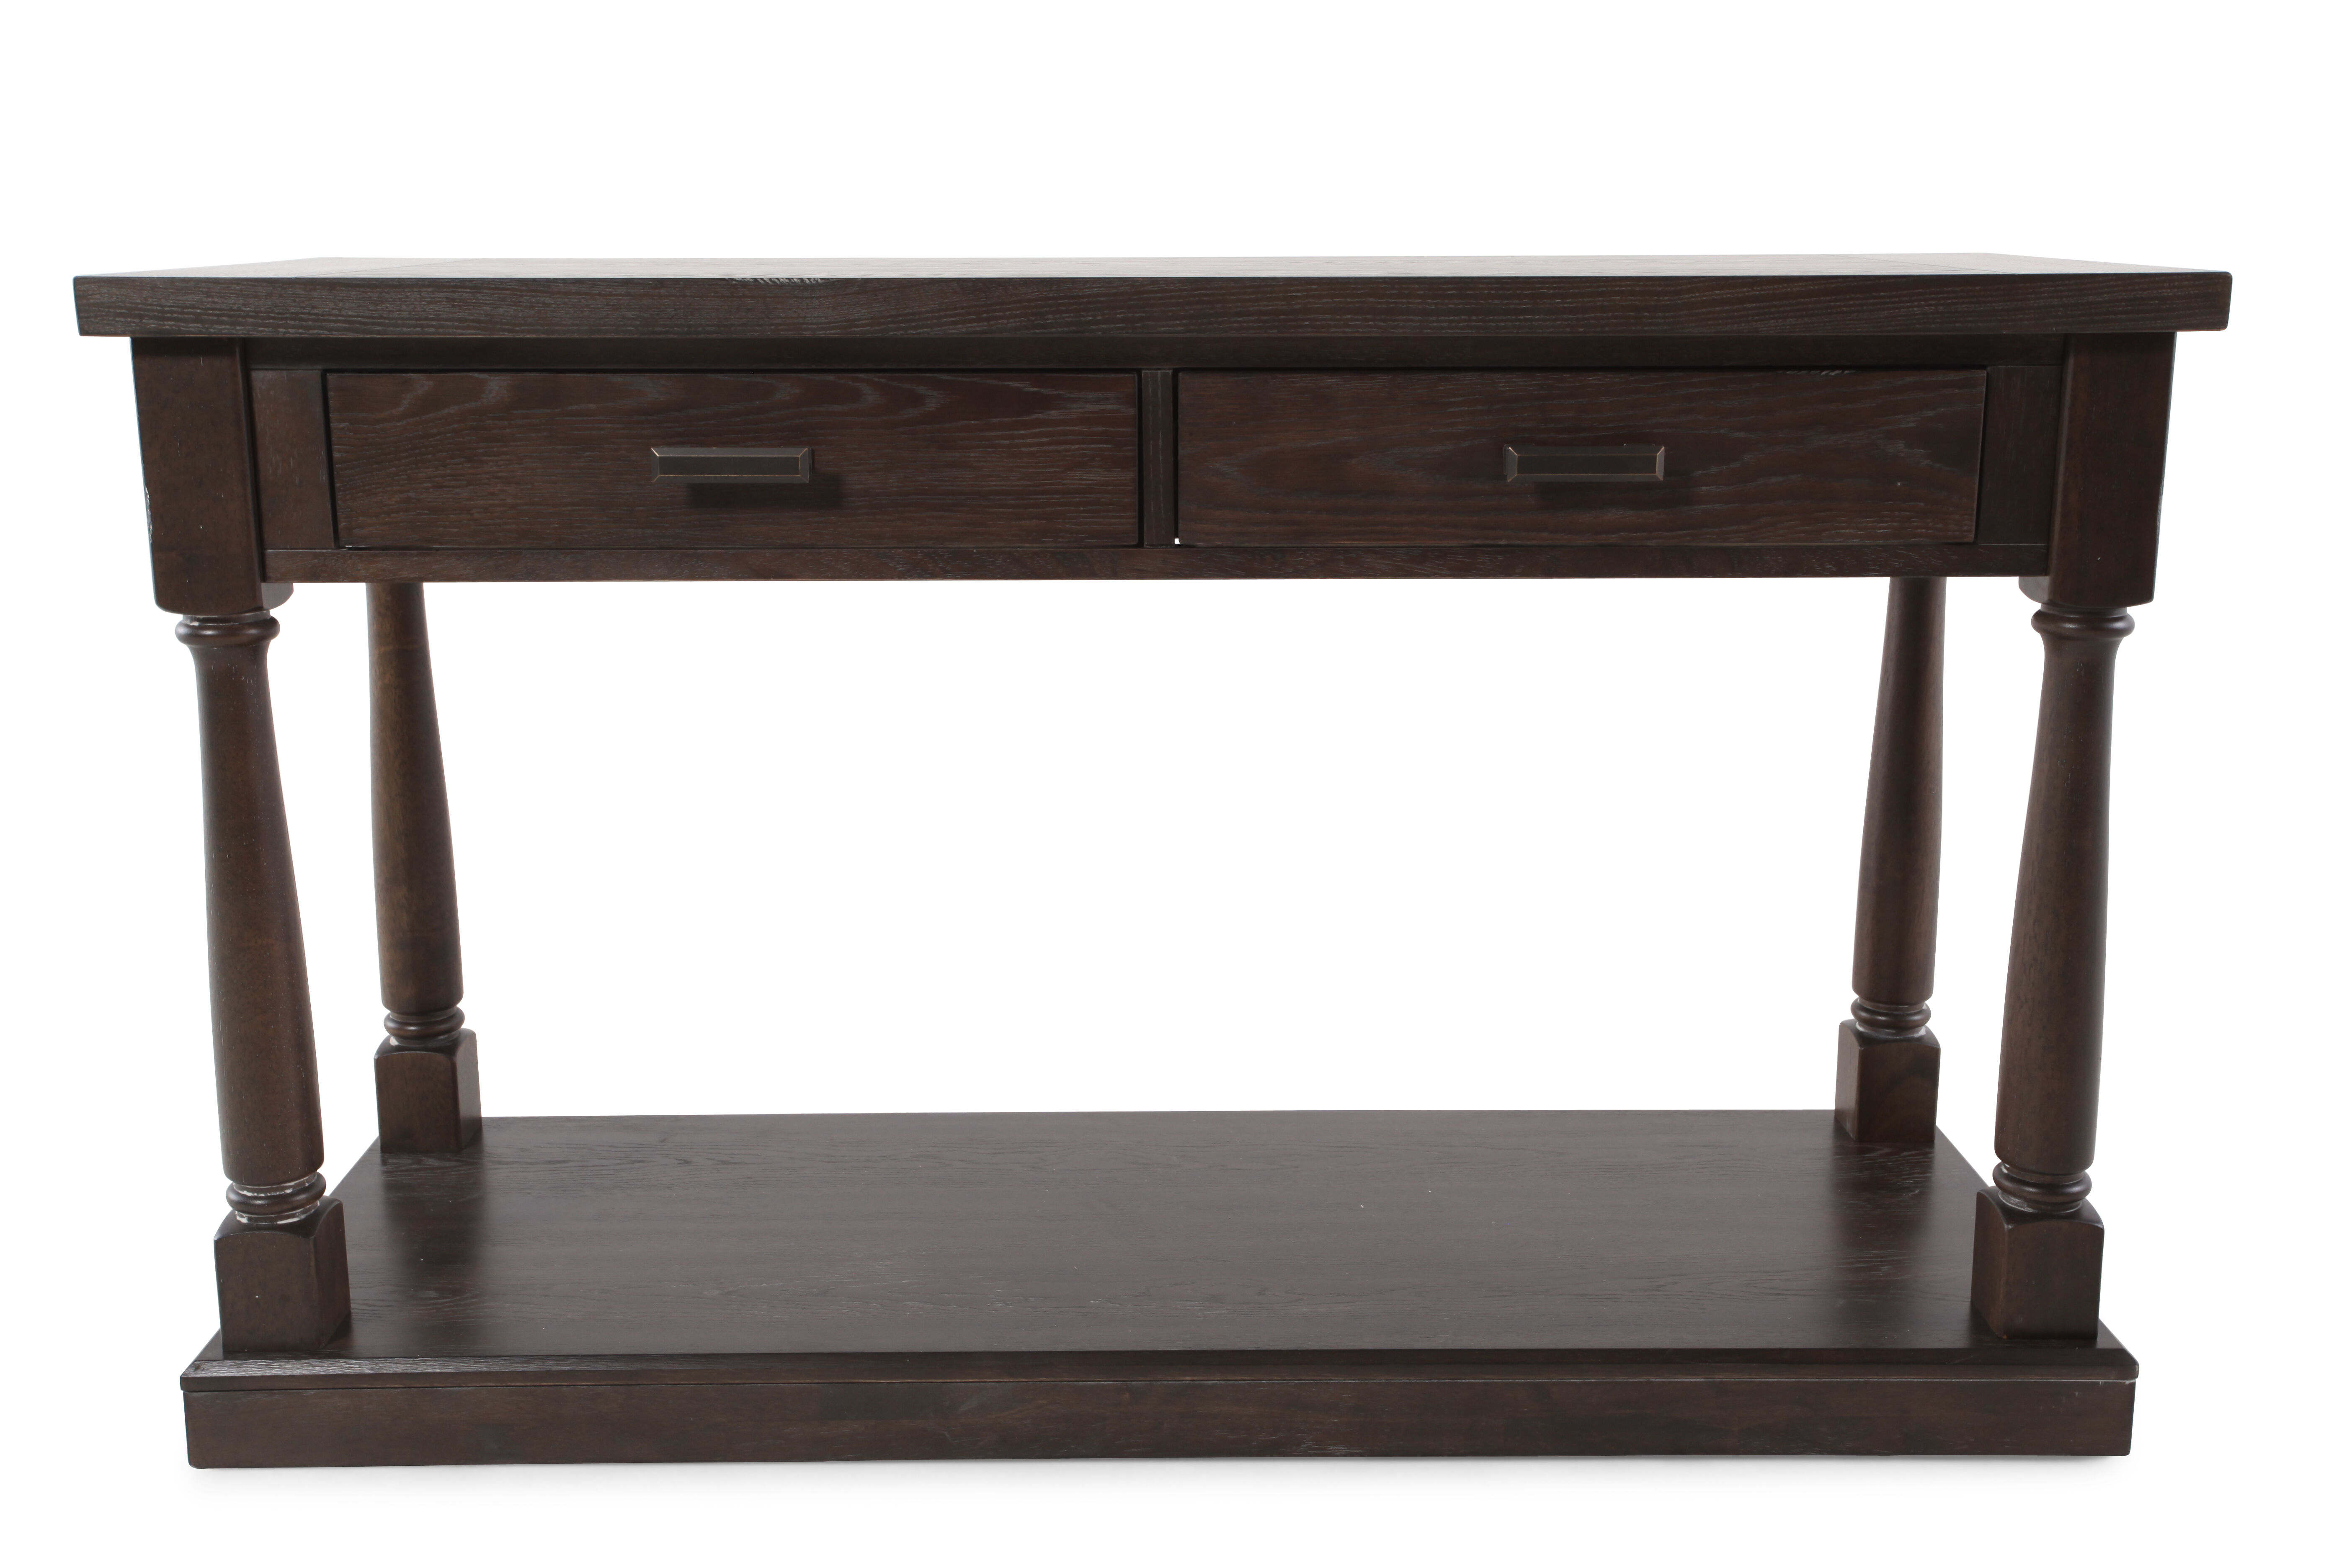 Turned Pedestals Contemporary Sofa Table In Dark Espresso